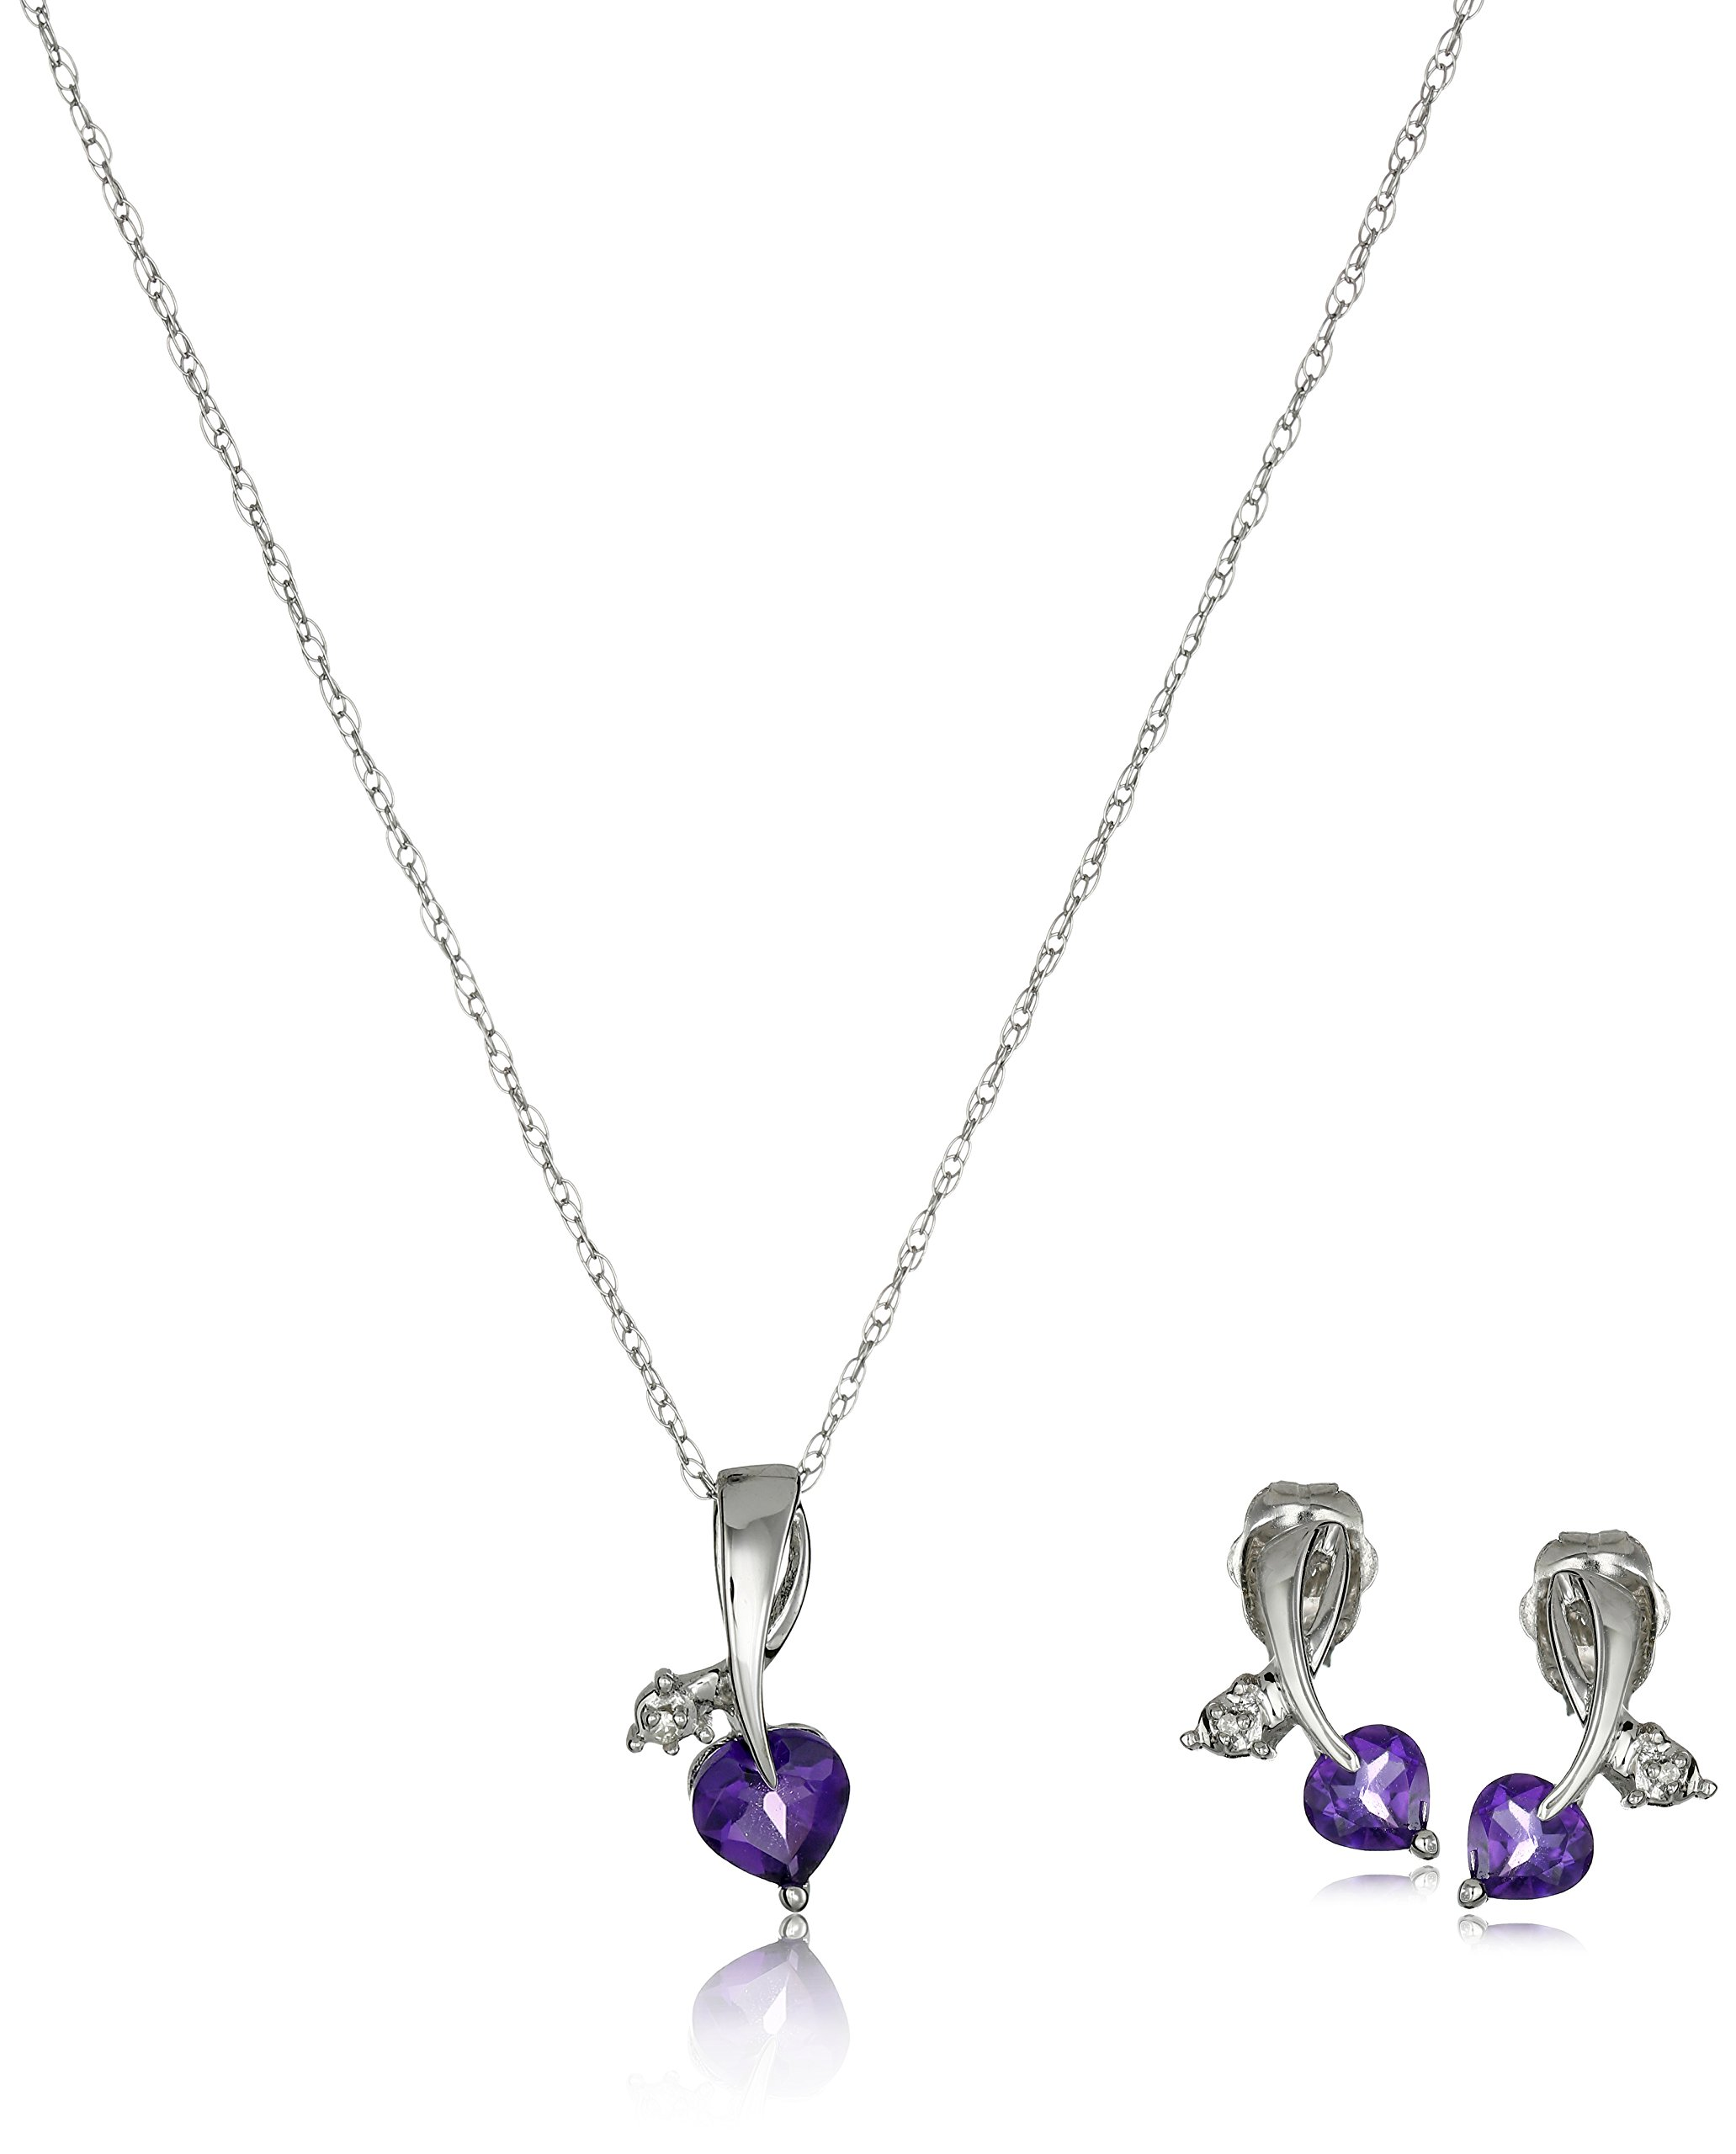 10k White Gold Amethyst and Diamond Accent Leaf Heart Pendant Necklace and Earrings Jewelry Set, 18''